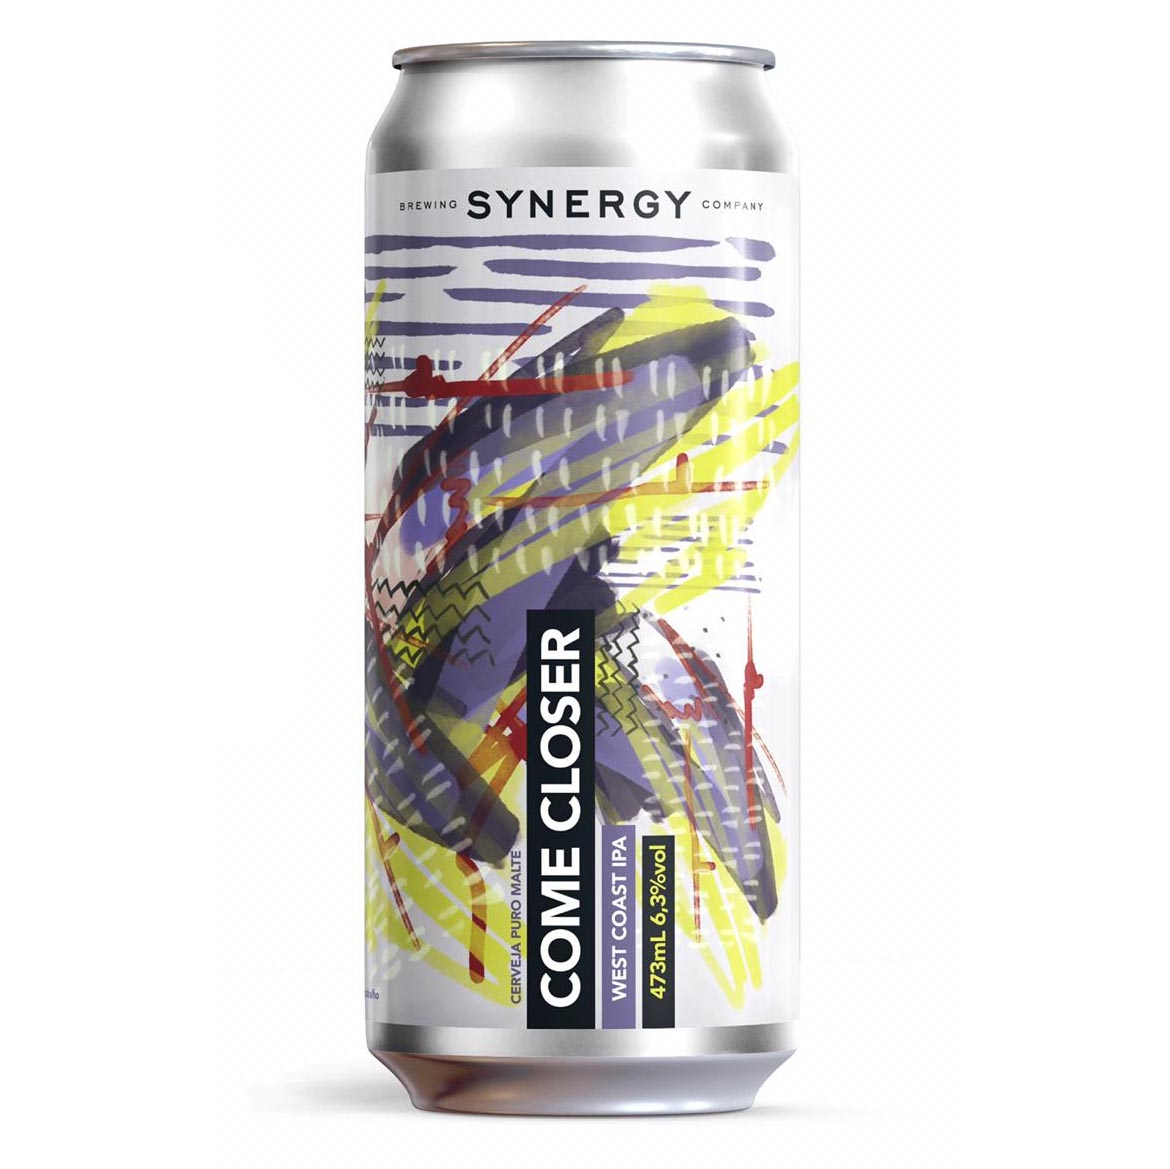 Synergy Come Closer West Coast IPA Lata 473ml